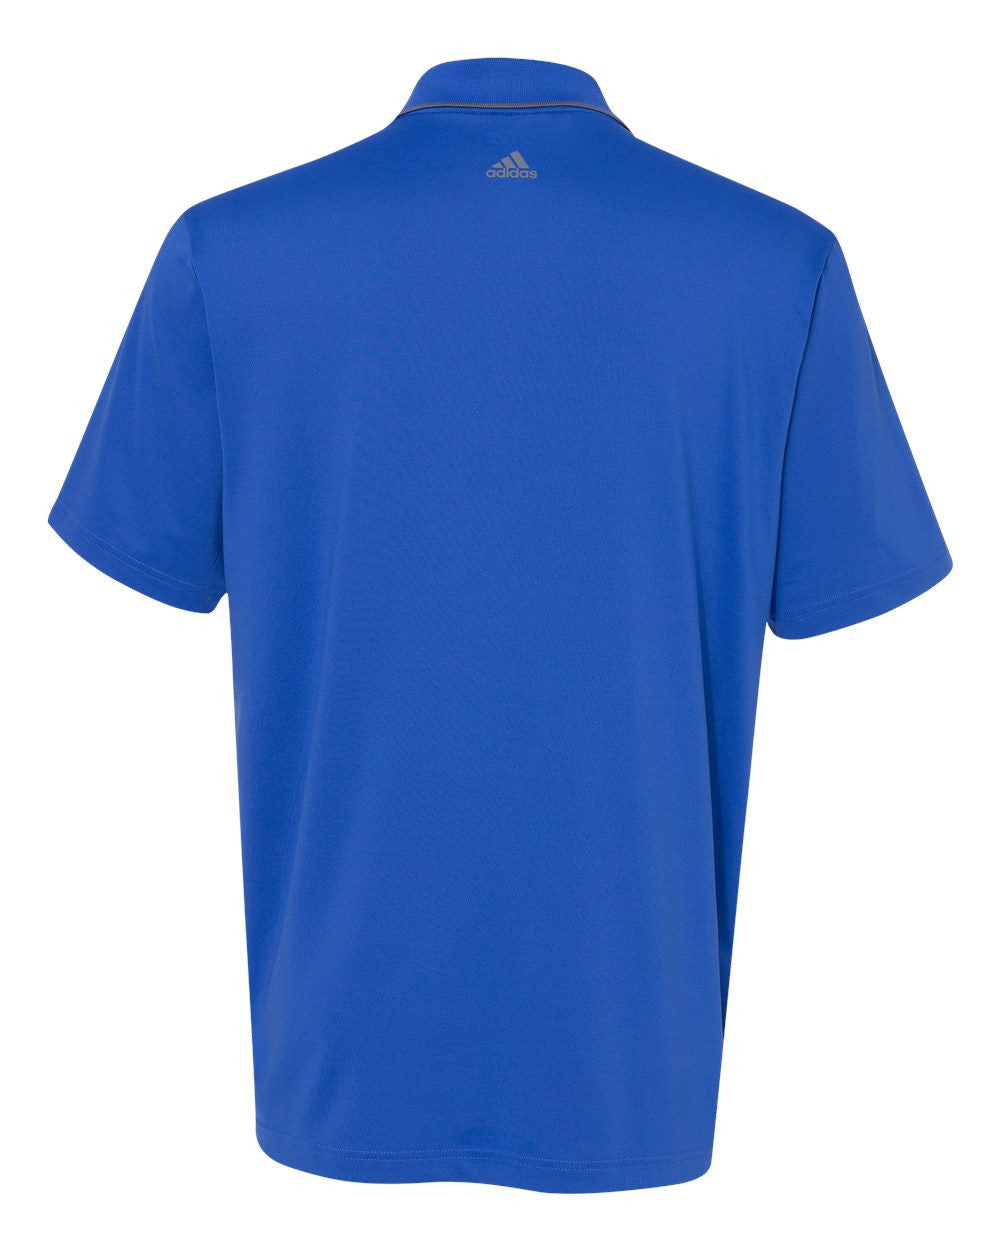 Golf Performance Chest Stripe Polos by Adidas - Discountedrack.com